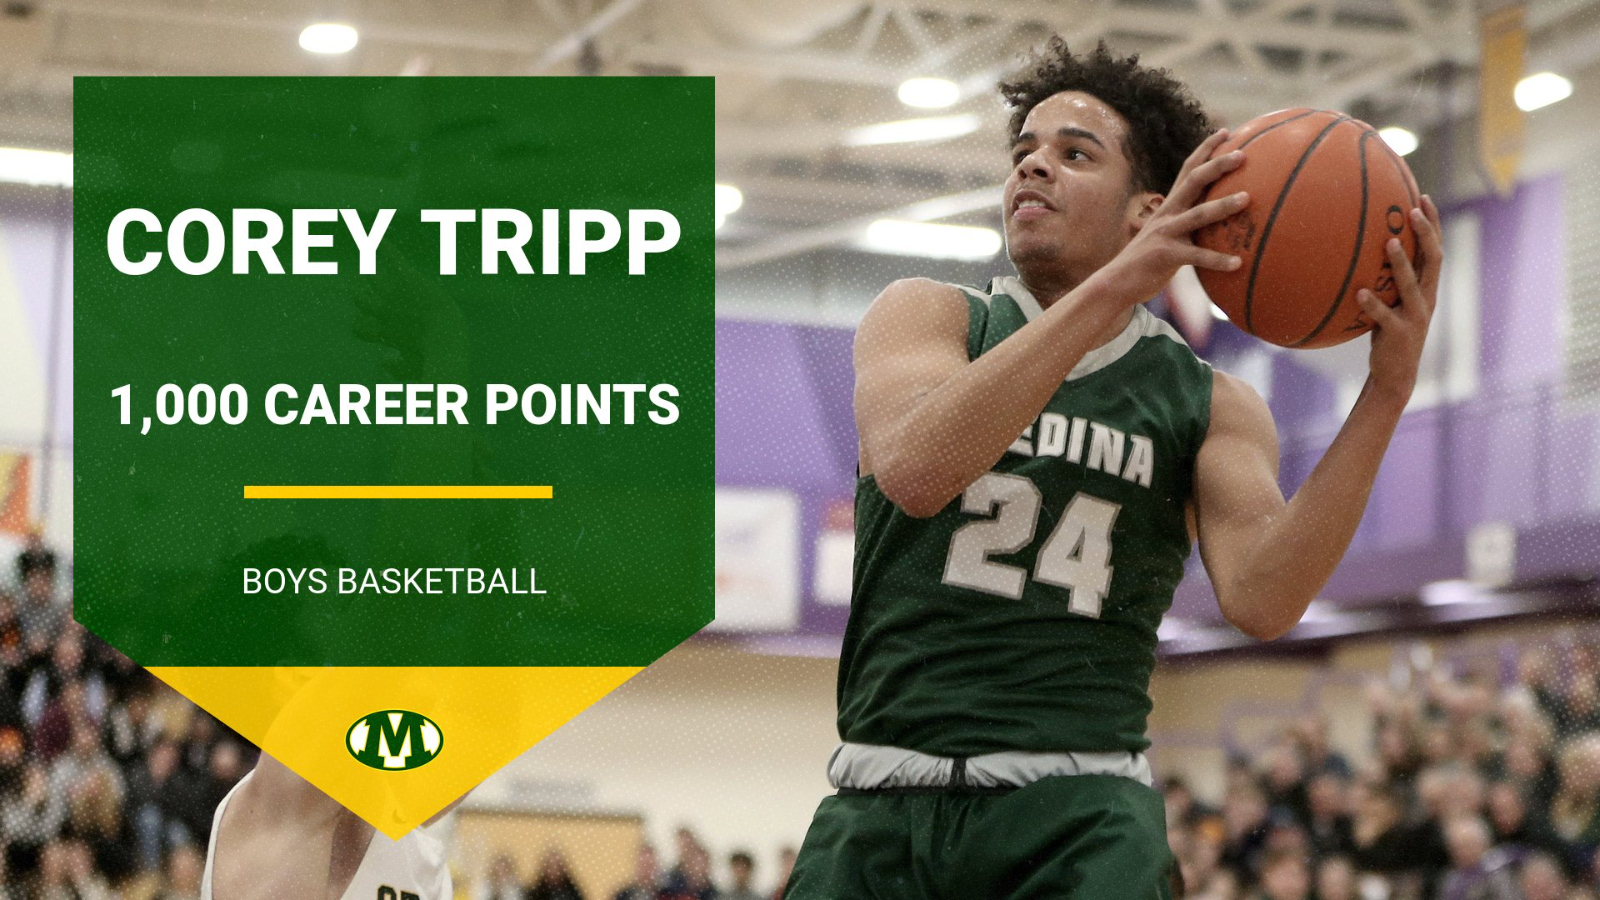 Congratulations to Corey Tripp on Scoring his 1,000th Career Point